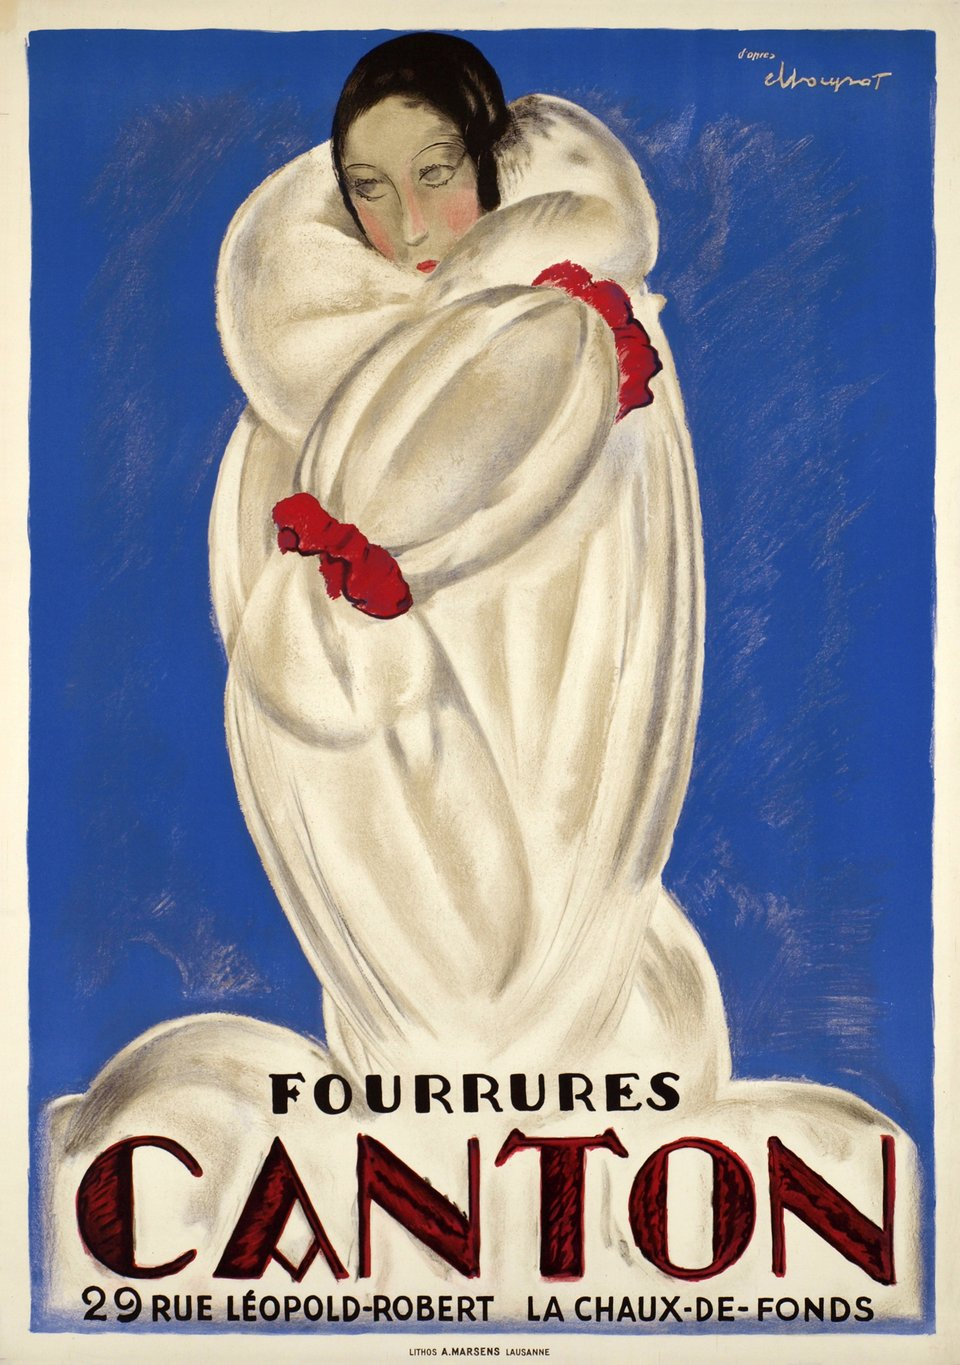 Canton Fourrures, second authorized edition circa 1930 – Vintage poster – Charles LOUPOT – 1930